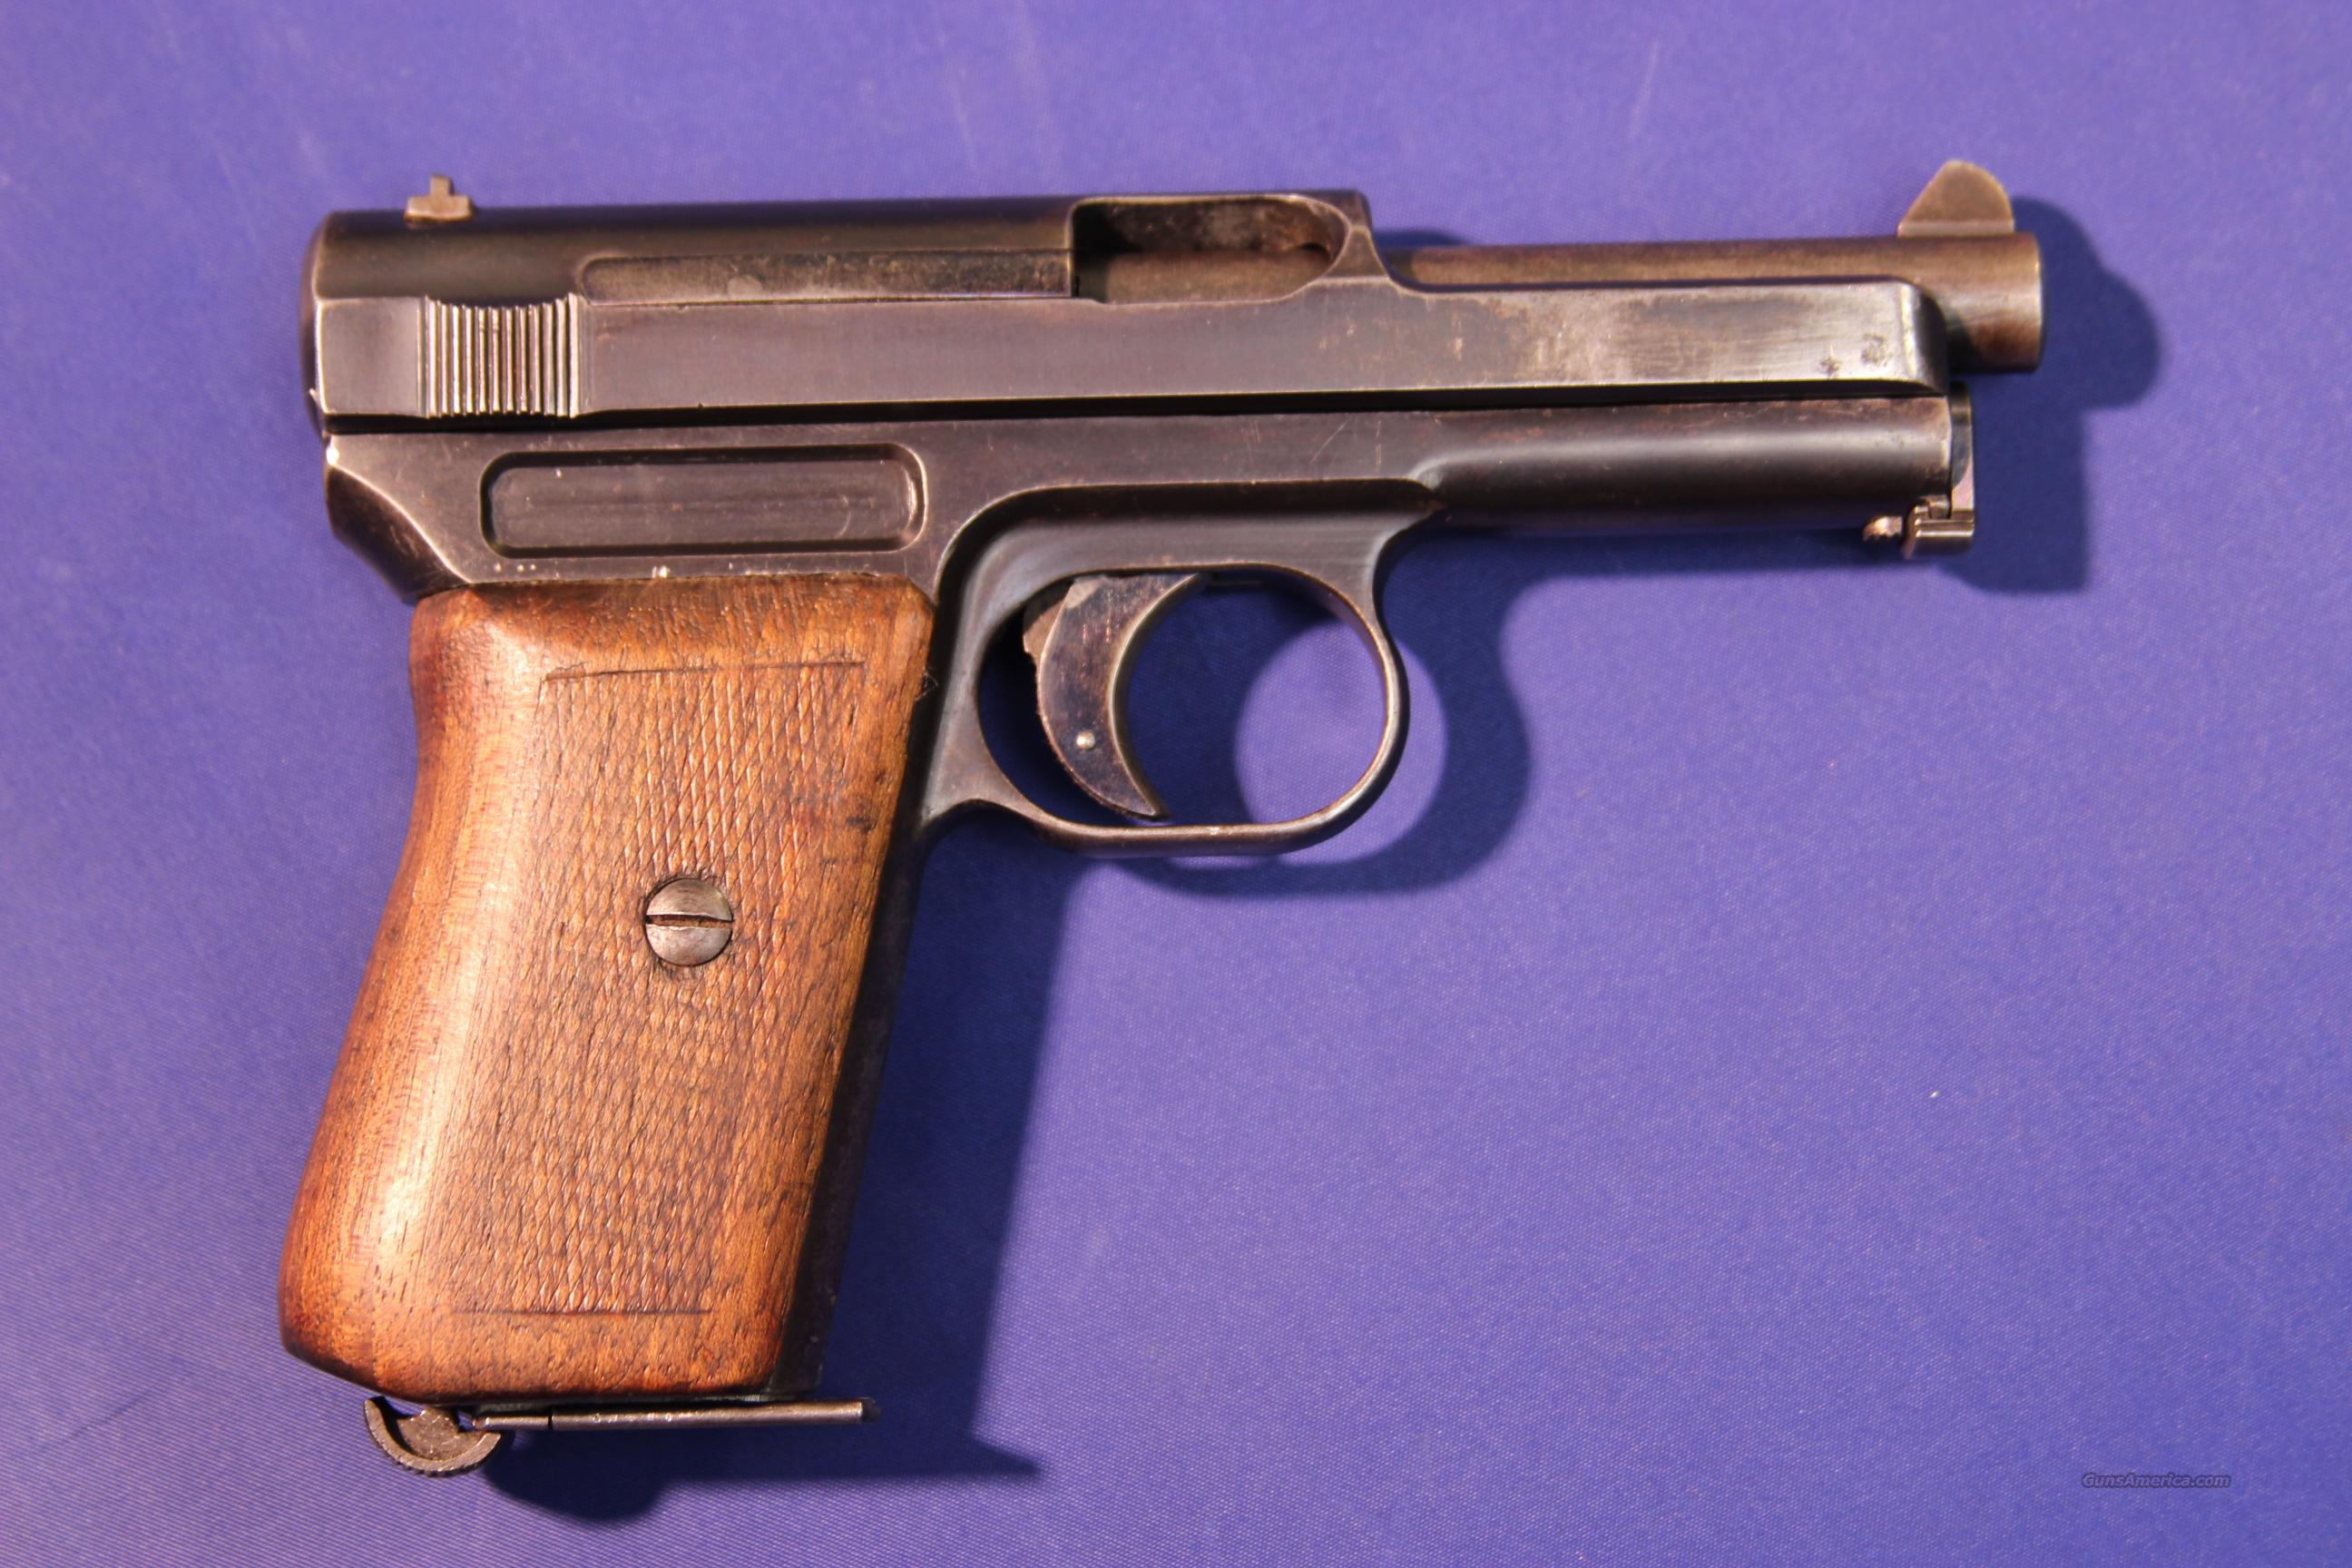 MAUSER POCKET MODEL 1914 7.65MM  Guns > Pistols > Mauser Pistols